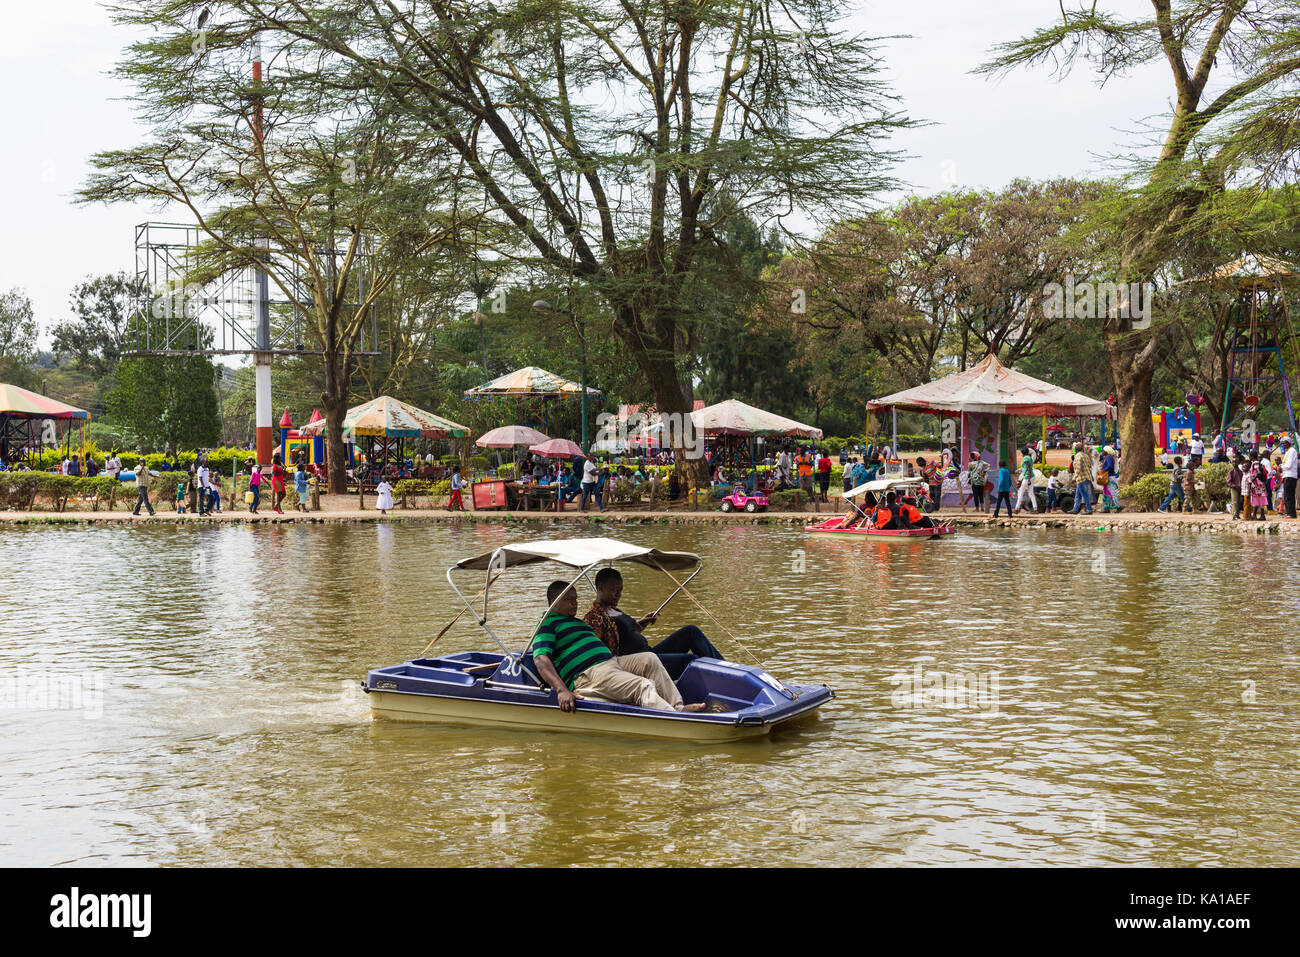 Paddle Boat Ride Stock Photos & Paddle Boat Ride Stock Images - Alamy